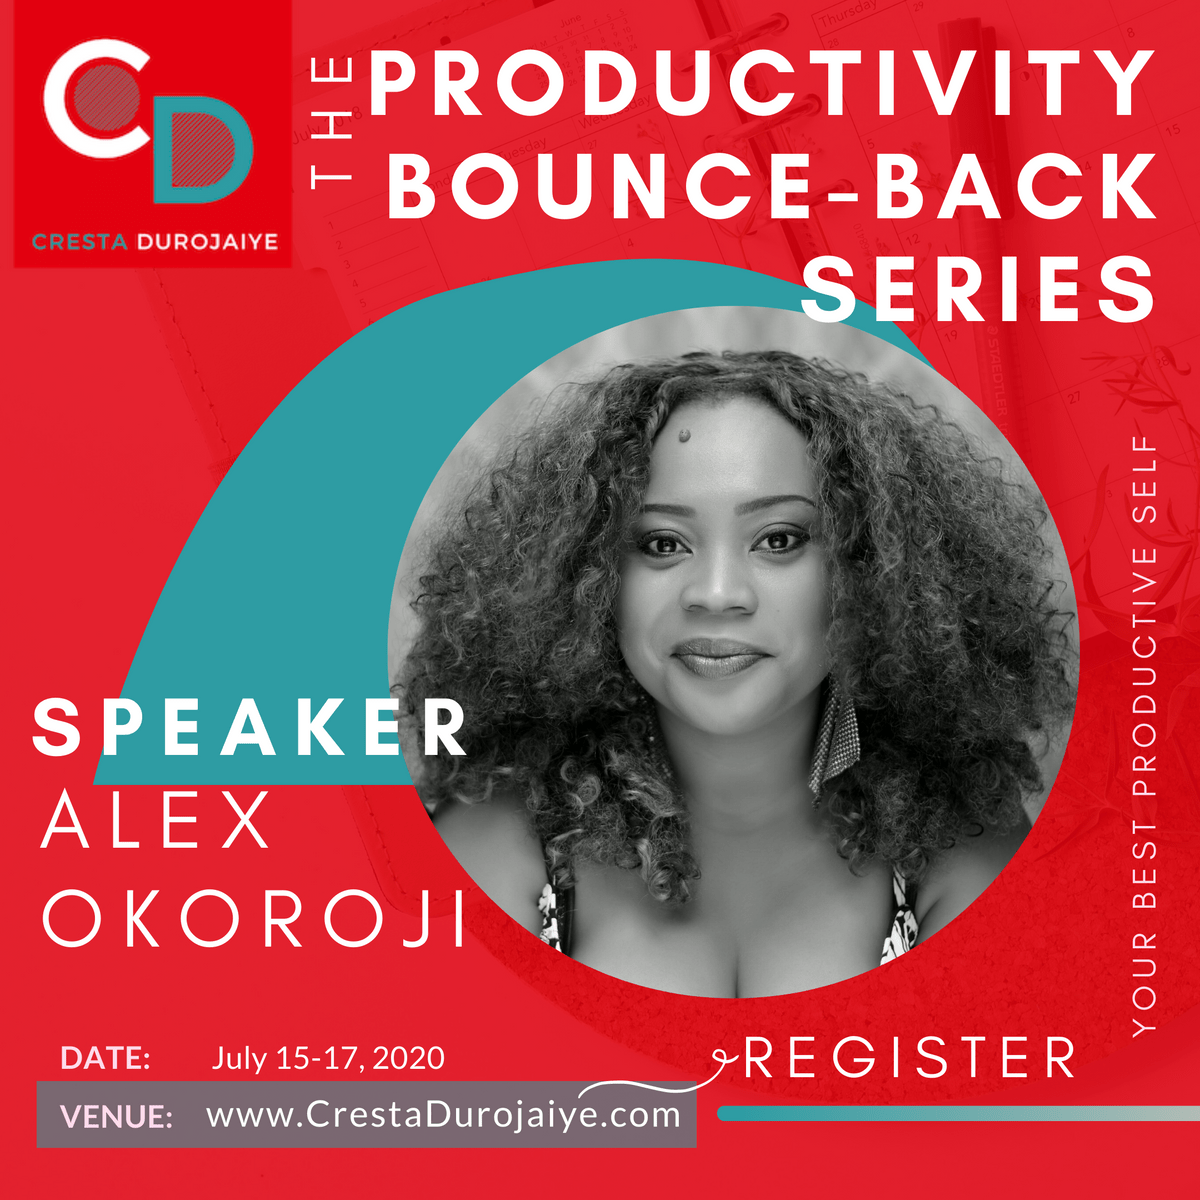 Alex Okoroji is speaking at The Productivity Bounce Back Series